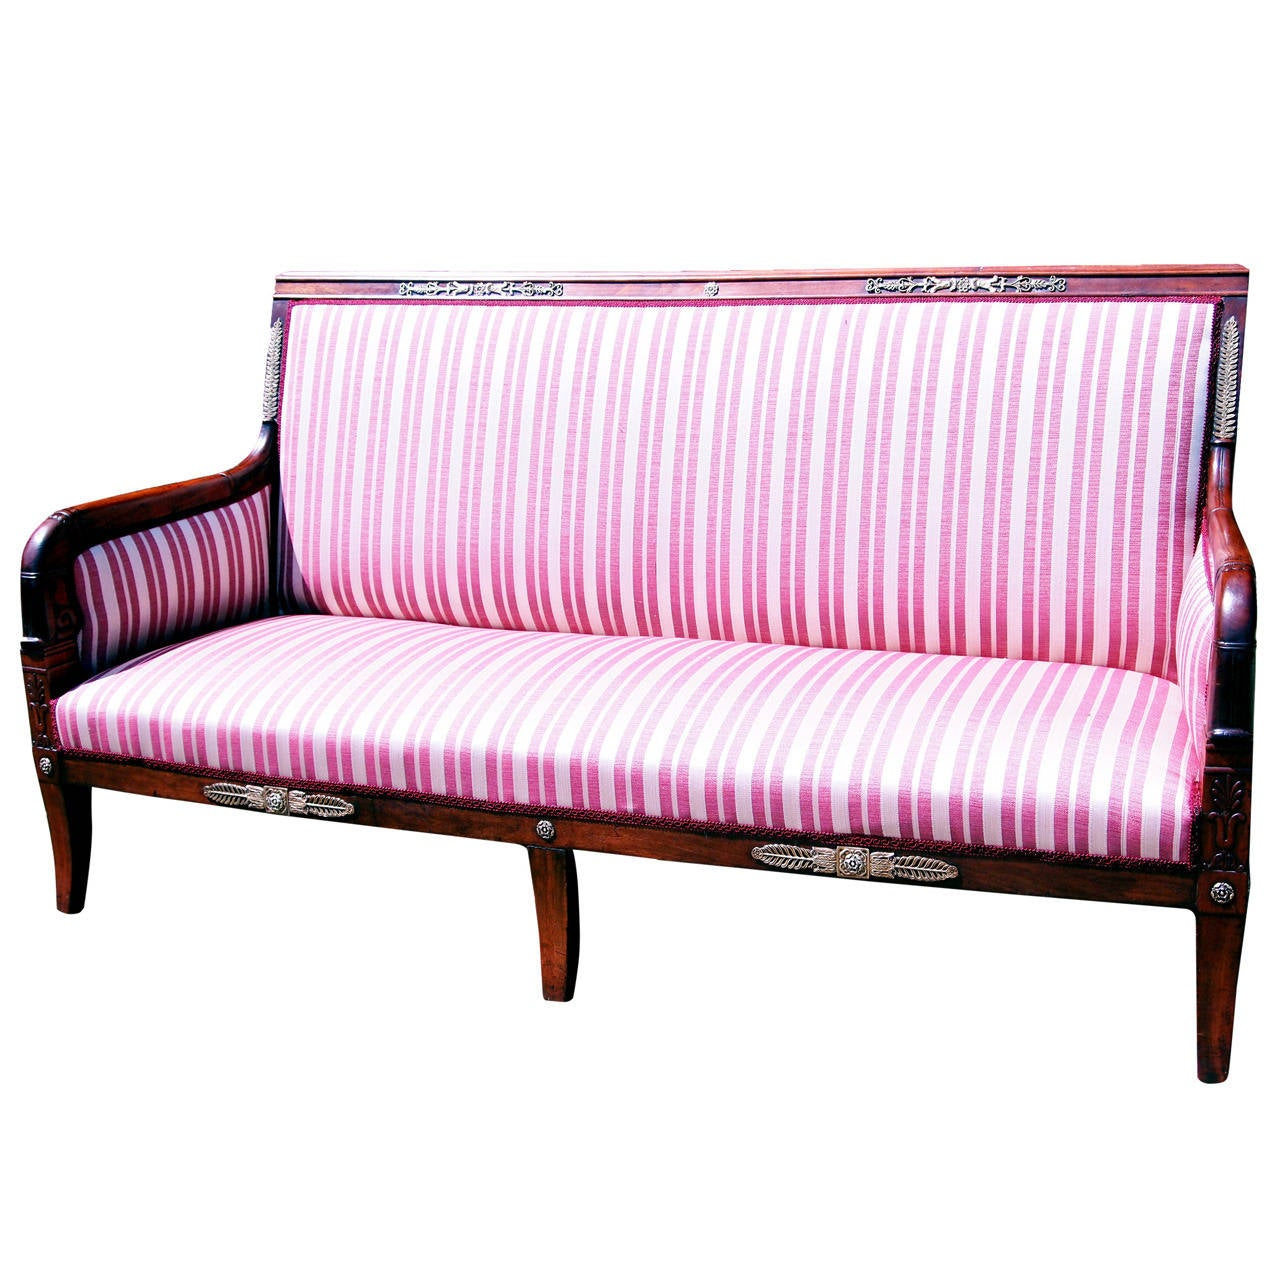 Antique regency mahogany french empire settee for sale at for Settees for sale